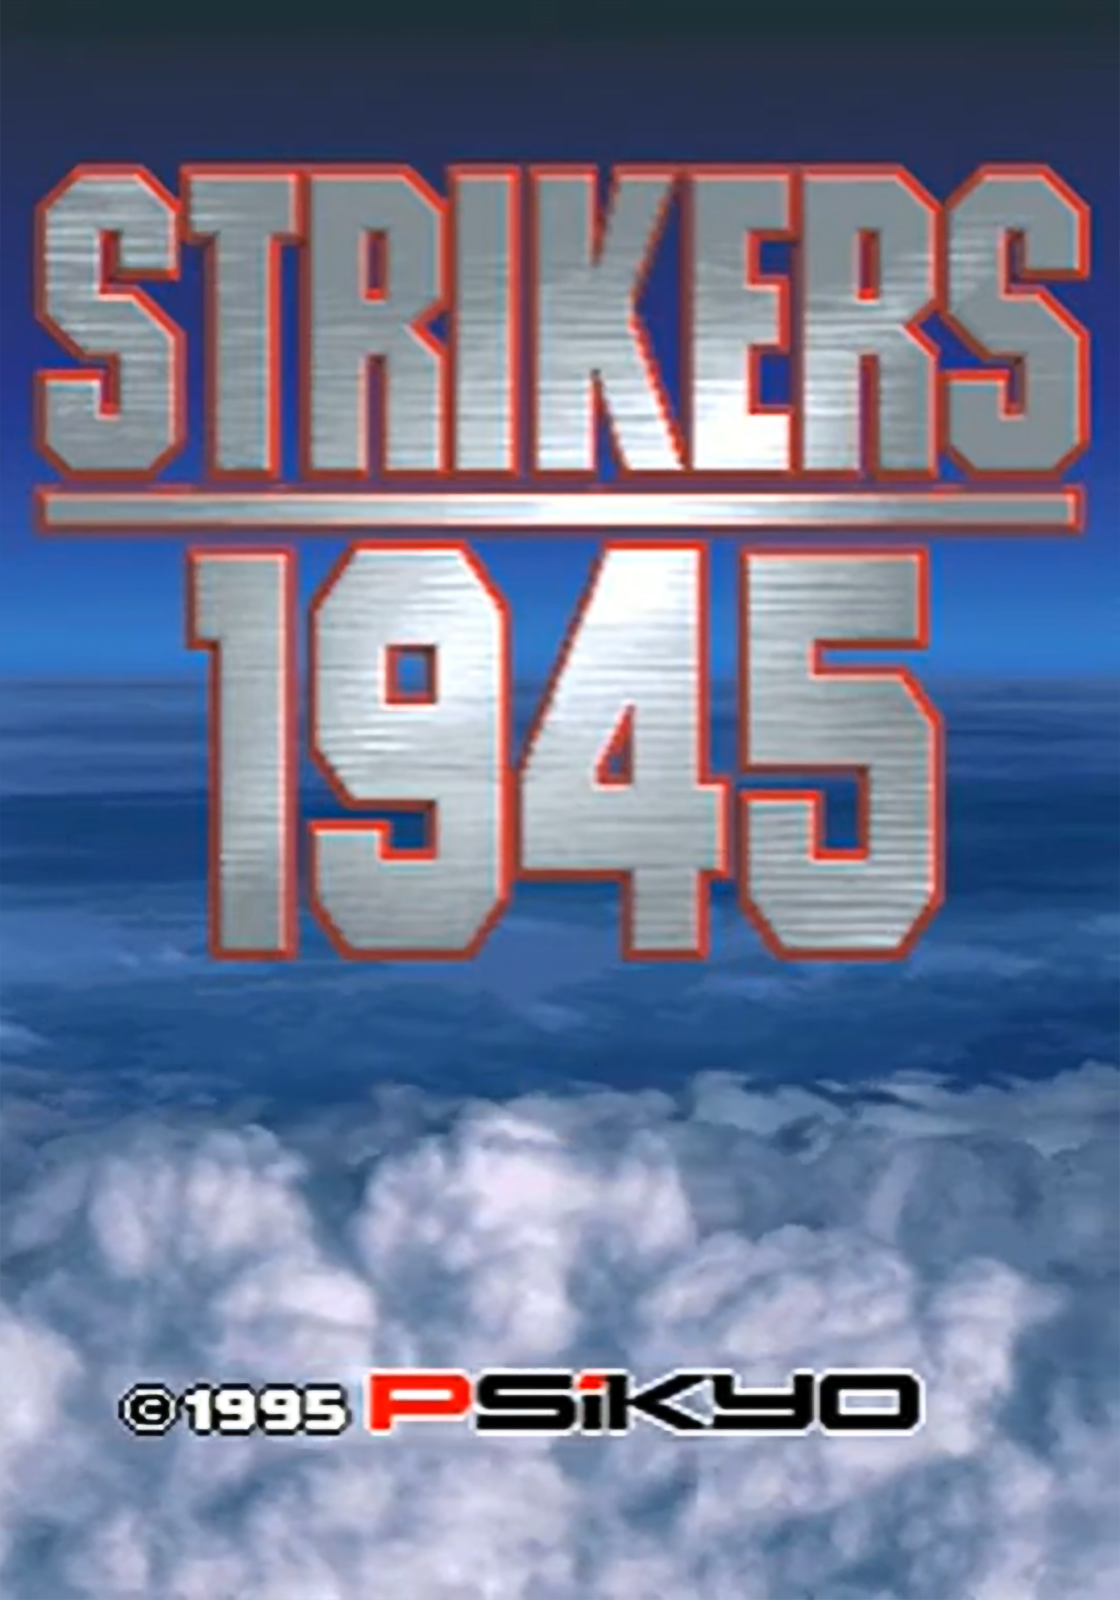 Strikers-1945-title